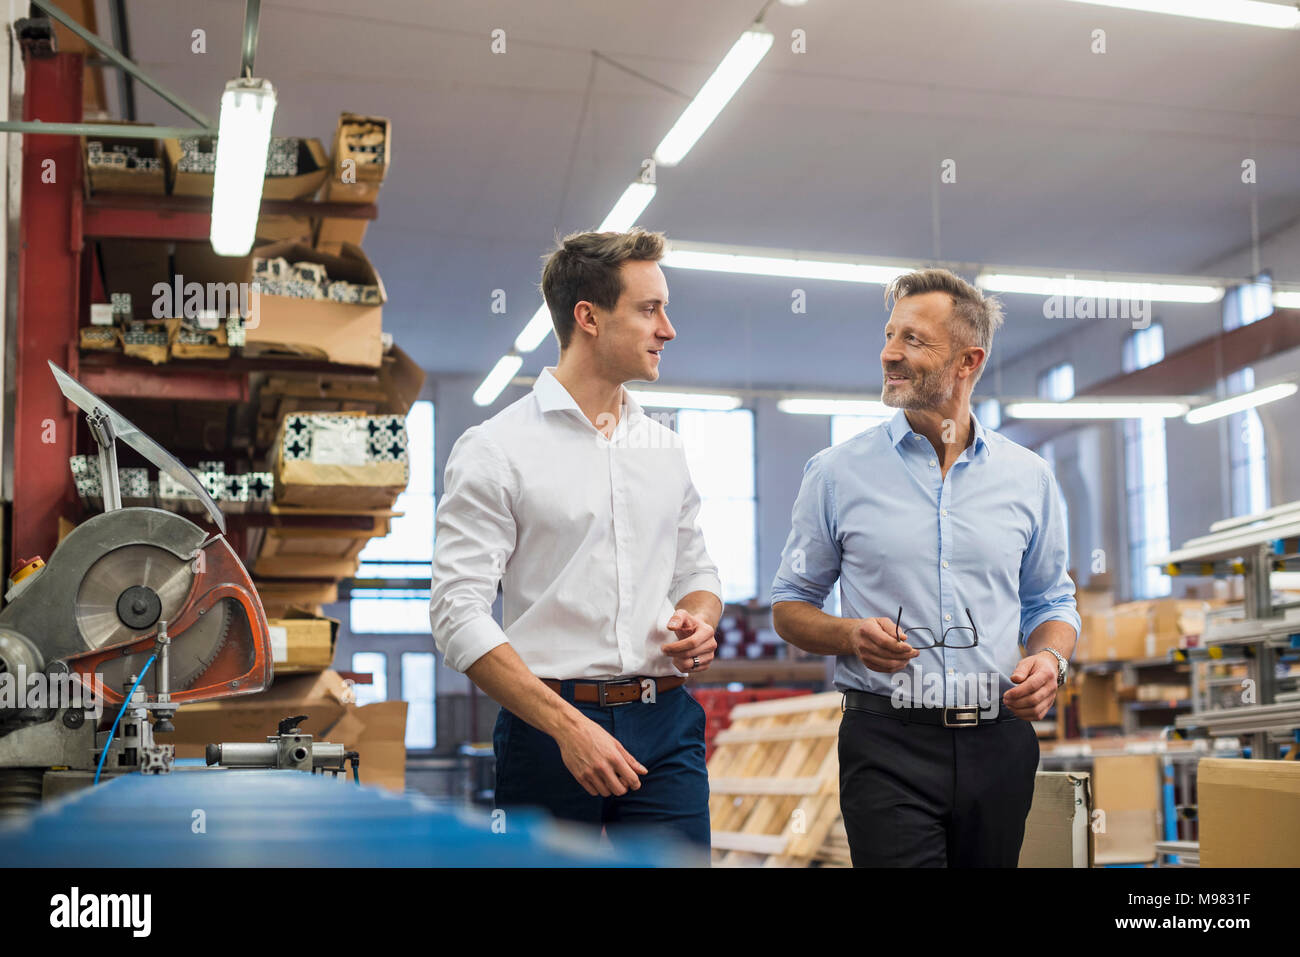 Two businessmen walking and talking in factory storeroom - Stock Image